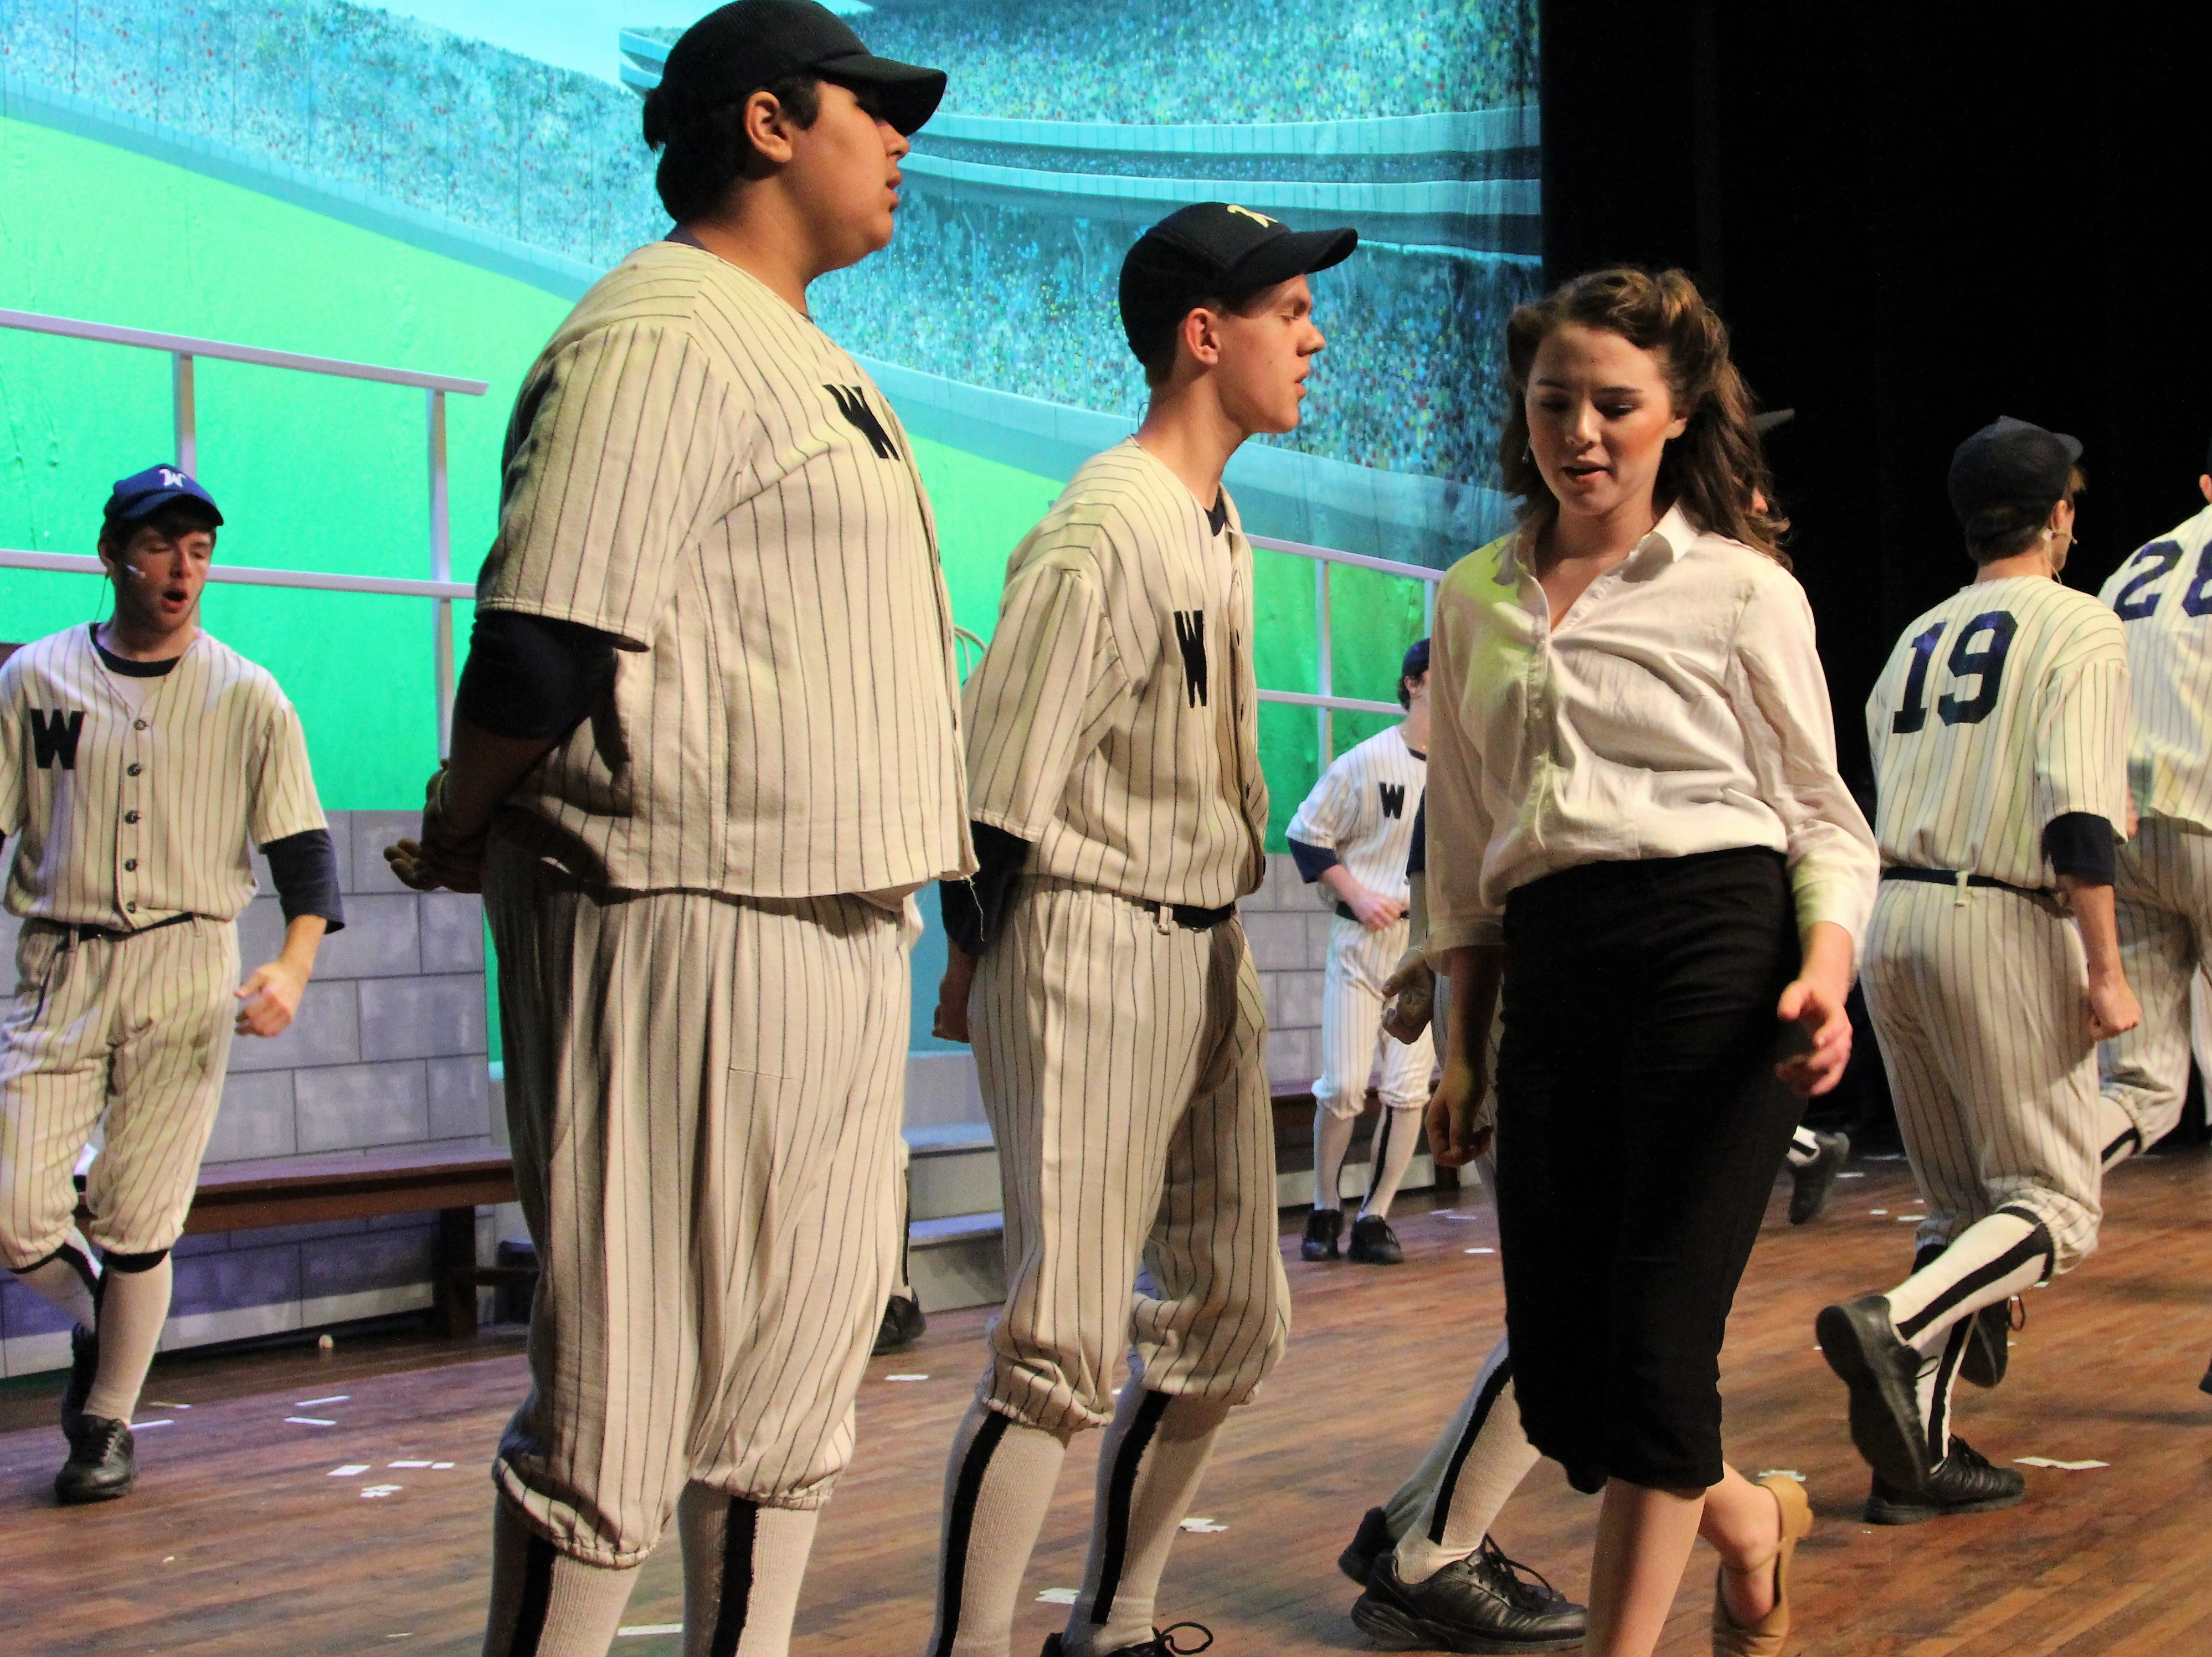 """Pleasant senior Alyson Hoffman, who plays probing reporter Gloria Thorpe,  walks by a group of baseball players with the Washington Senators during a rehearsal for her high school's production of """"Damn Yankees."""""""